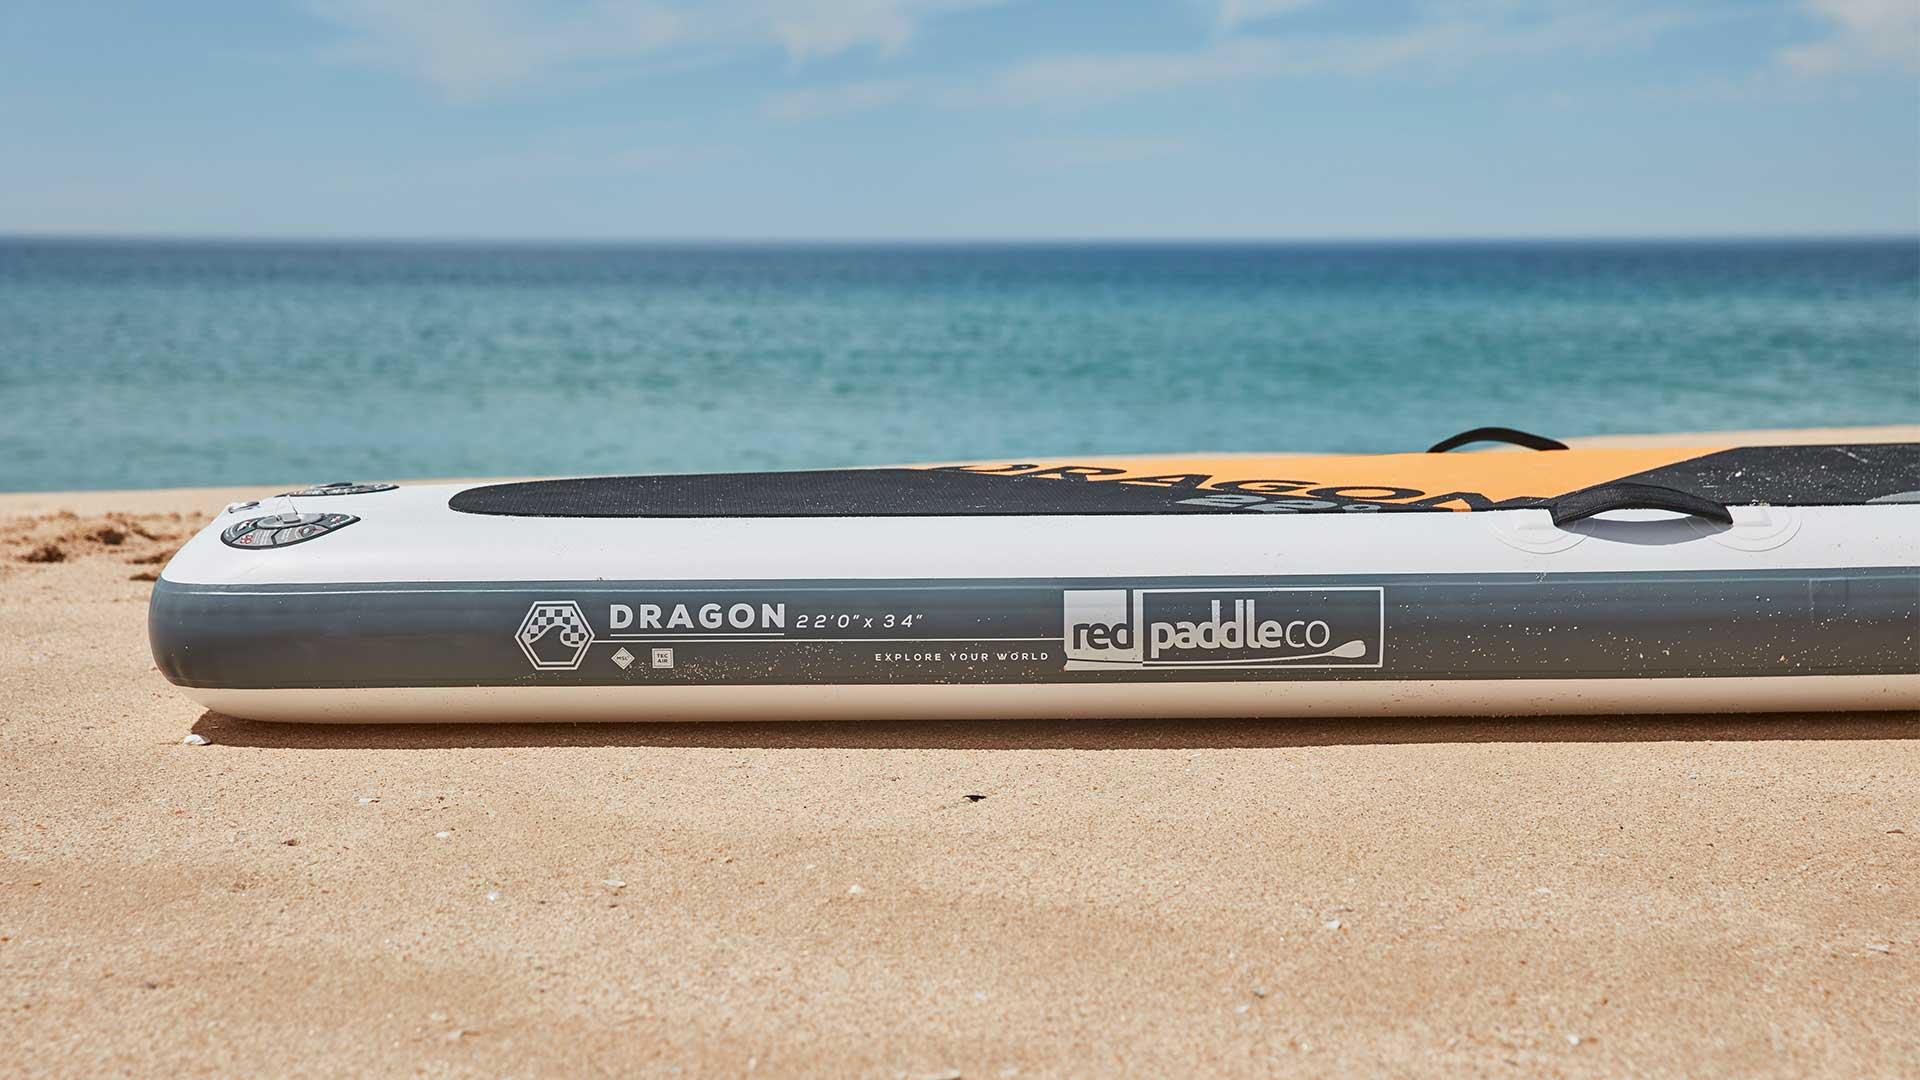 redpaddleco-220-dragon-inflatable-paddle-board-desktop-gallery-cargo